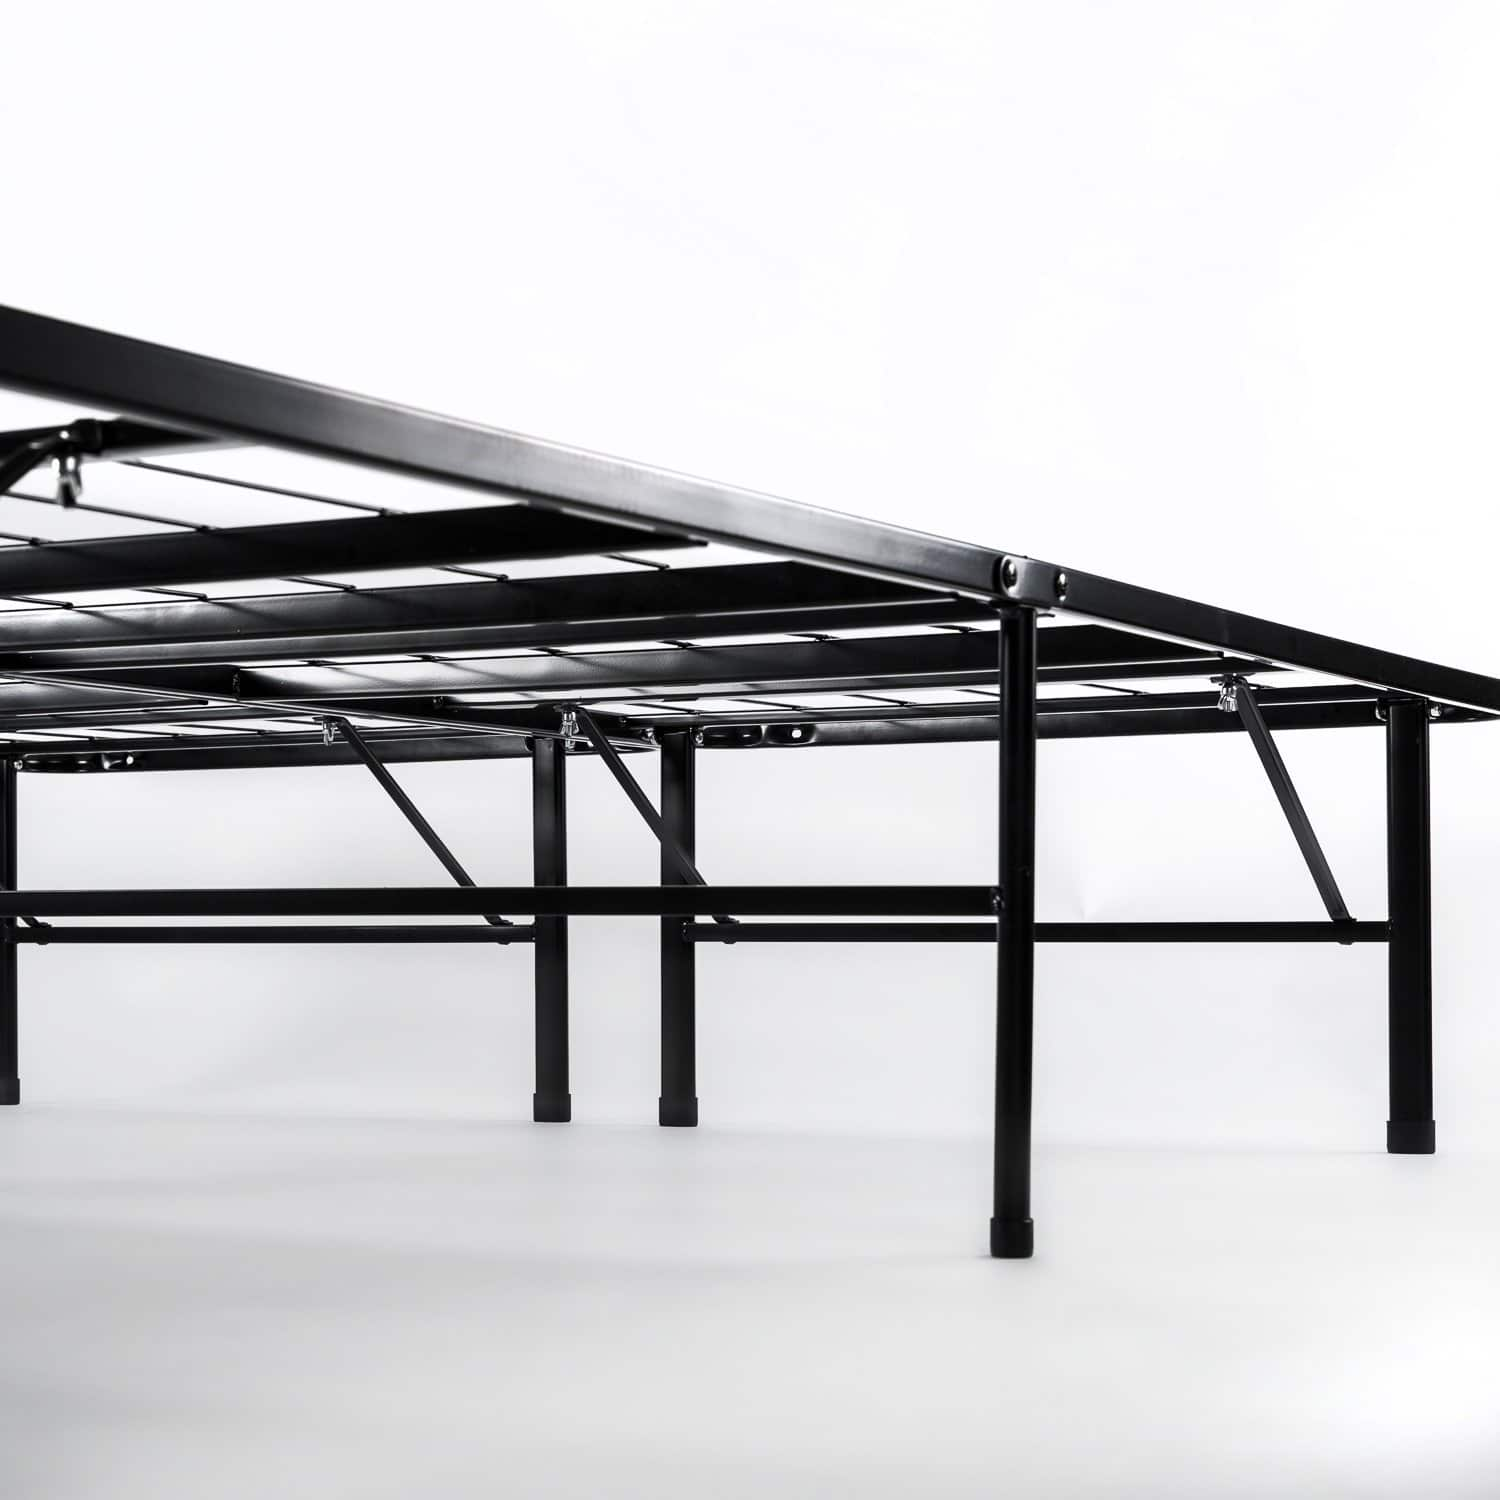 Best bed frames 2017 detailed reviews for The best bed frames